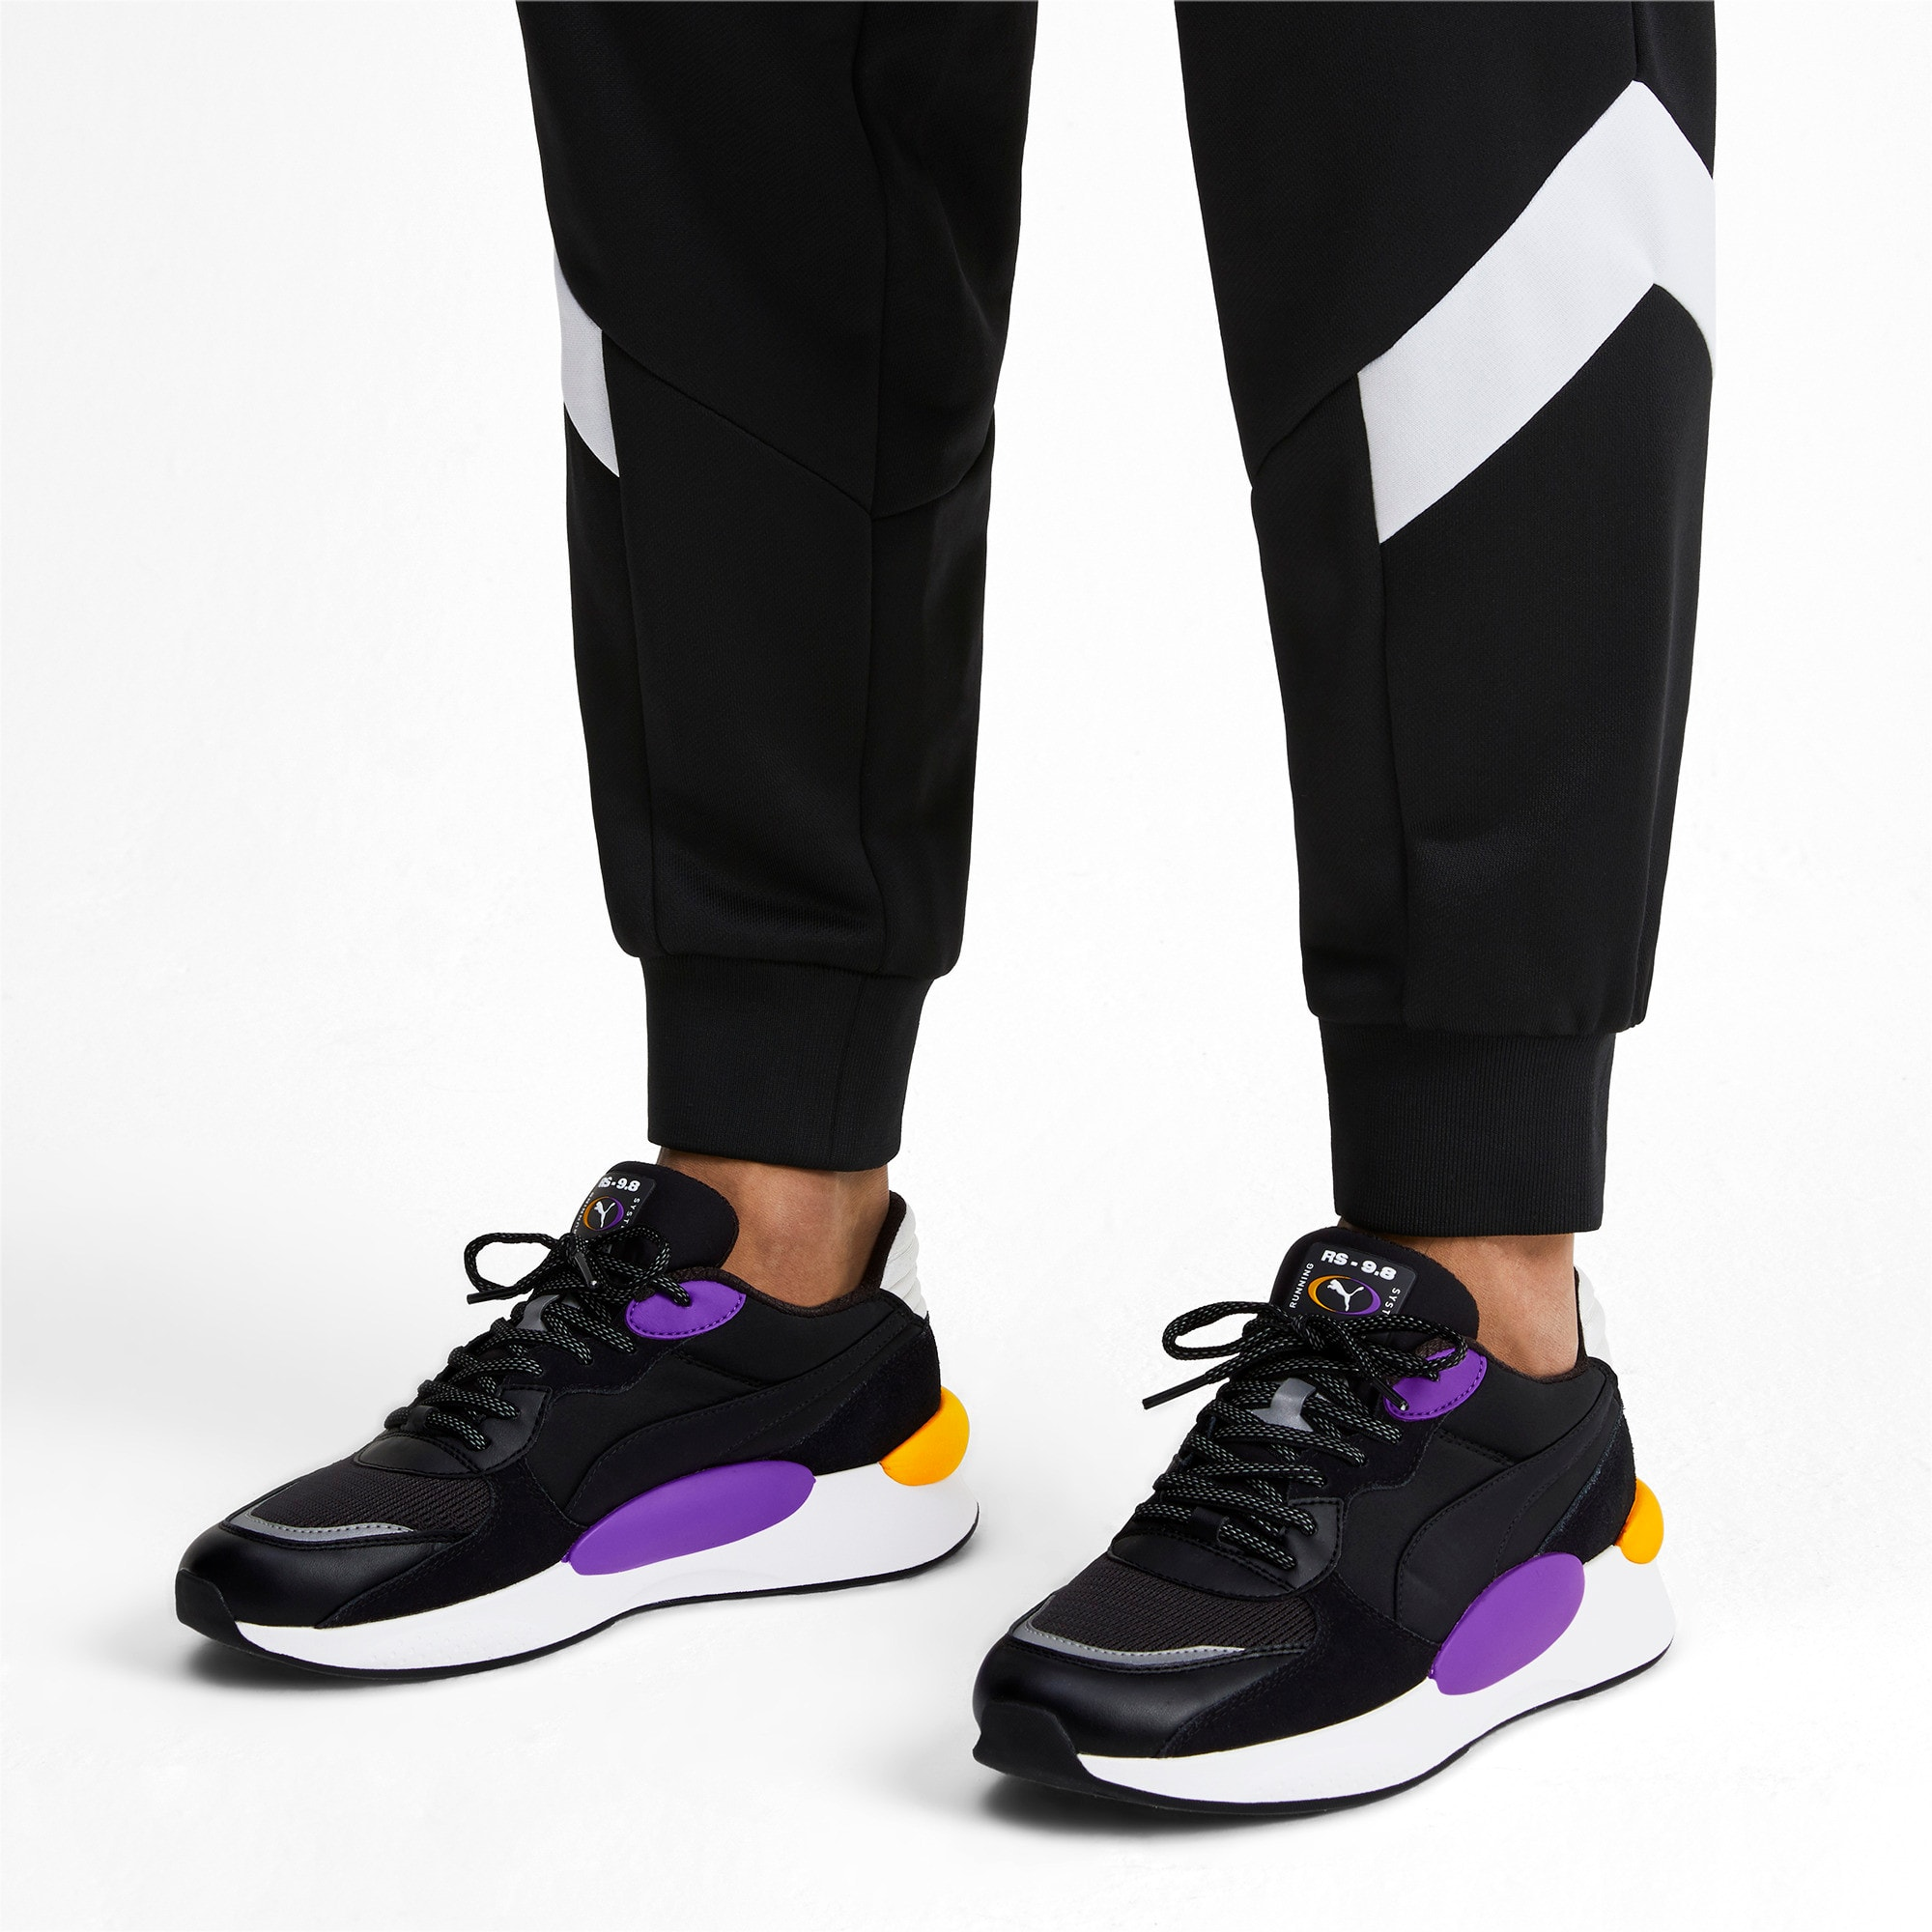 Thumbnail 2 of RS 9.8 Gravity Trainers, Puma Black-Purple Glimmer, medium